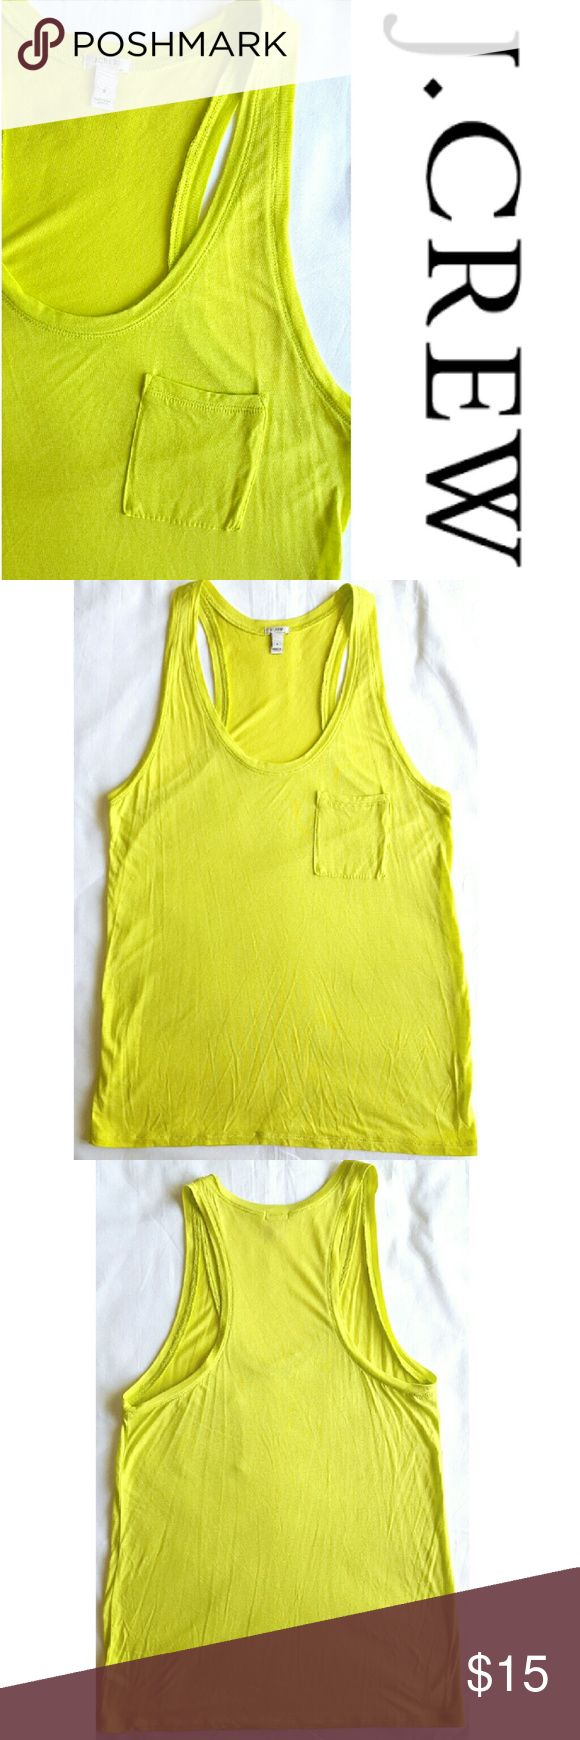 Neon yellow pocket tank top Bright neon yellow tank with front pocket detail. In excellent LIKE NEW condition. J. Crew Tops Tank Tops